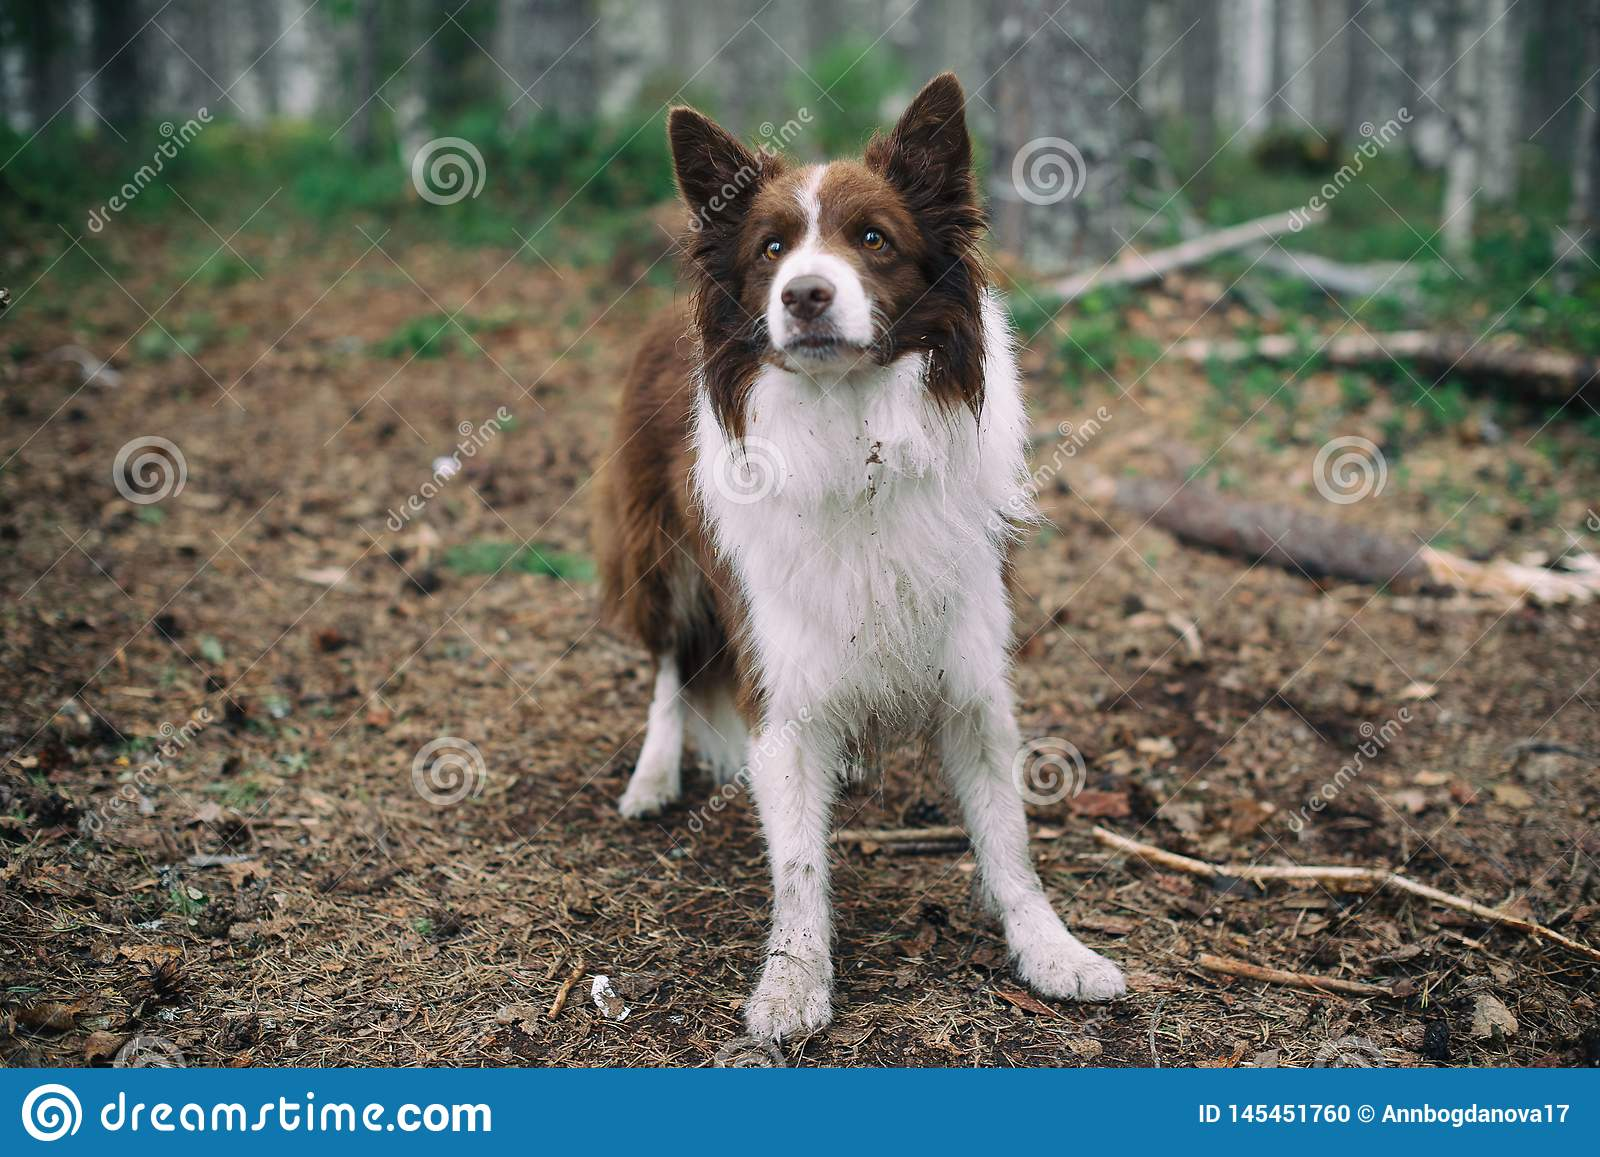 Dog in the forest. brown border collie in the forest.